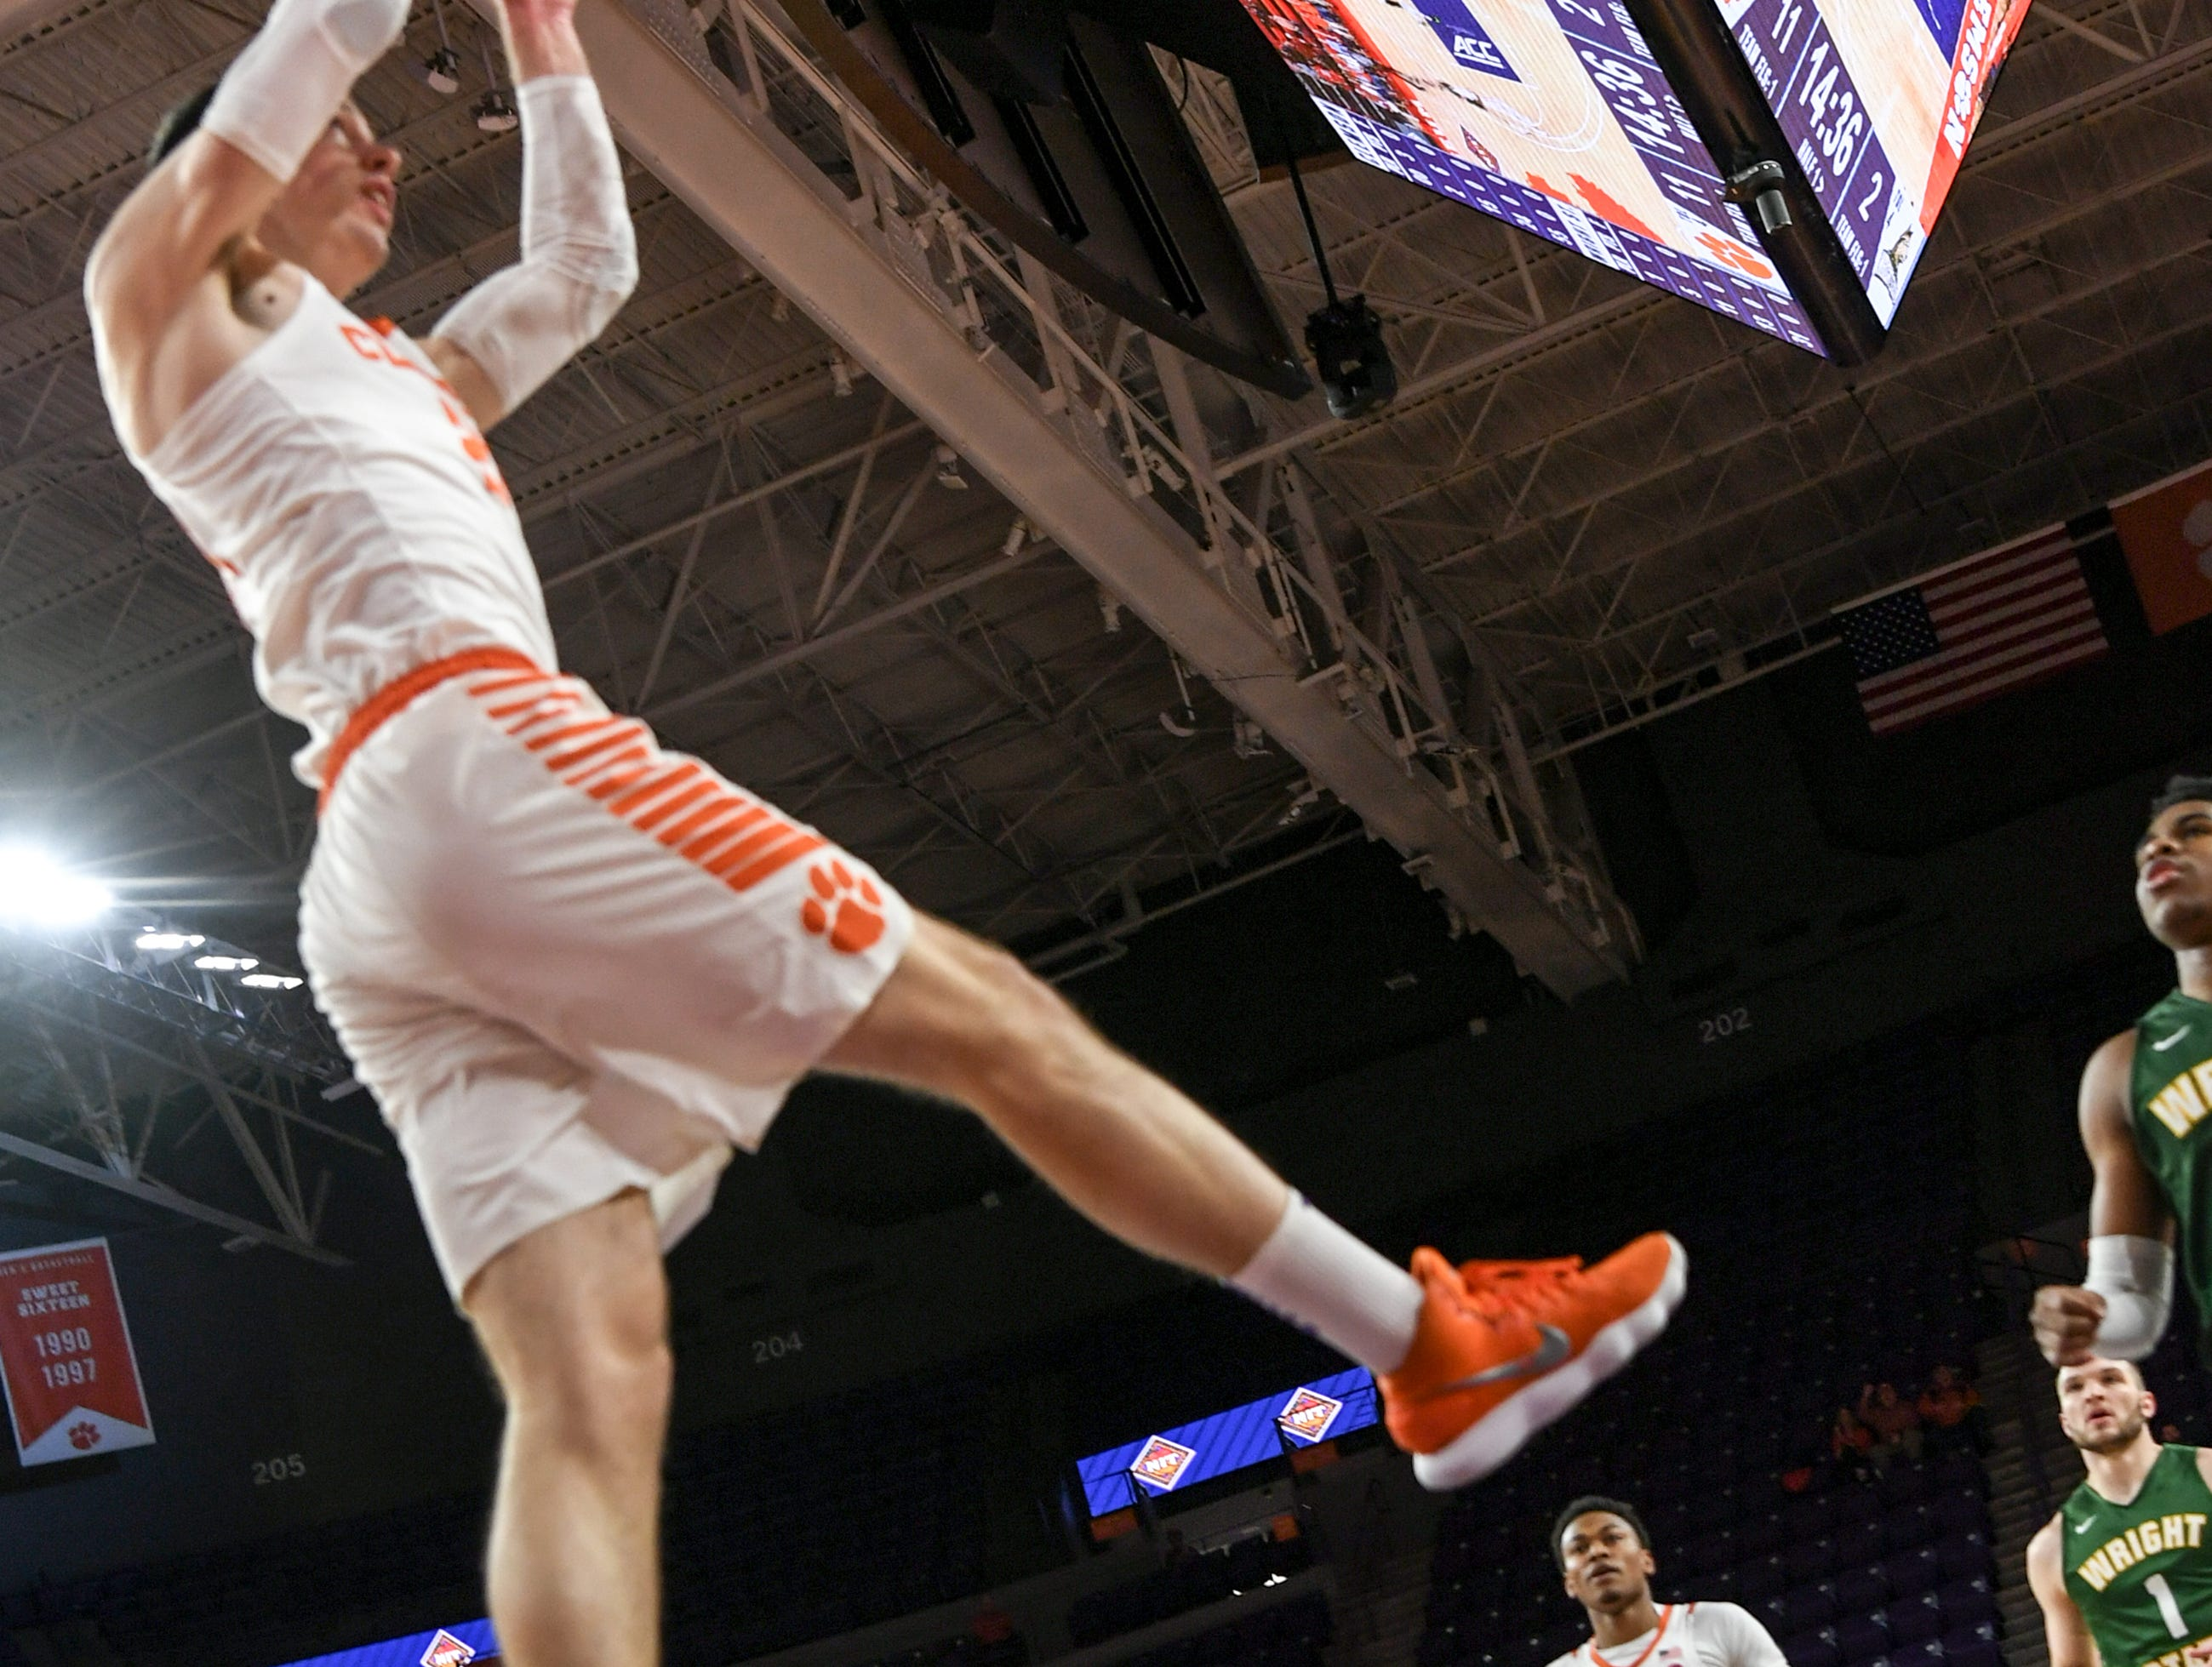 Clemson forward David Skara (24) dunks during the first half of the NIT at Littlejohn Coliseum in Clemson Tuesday, March 19, 2019.